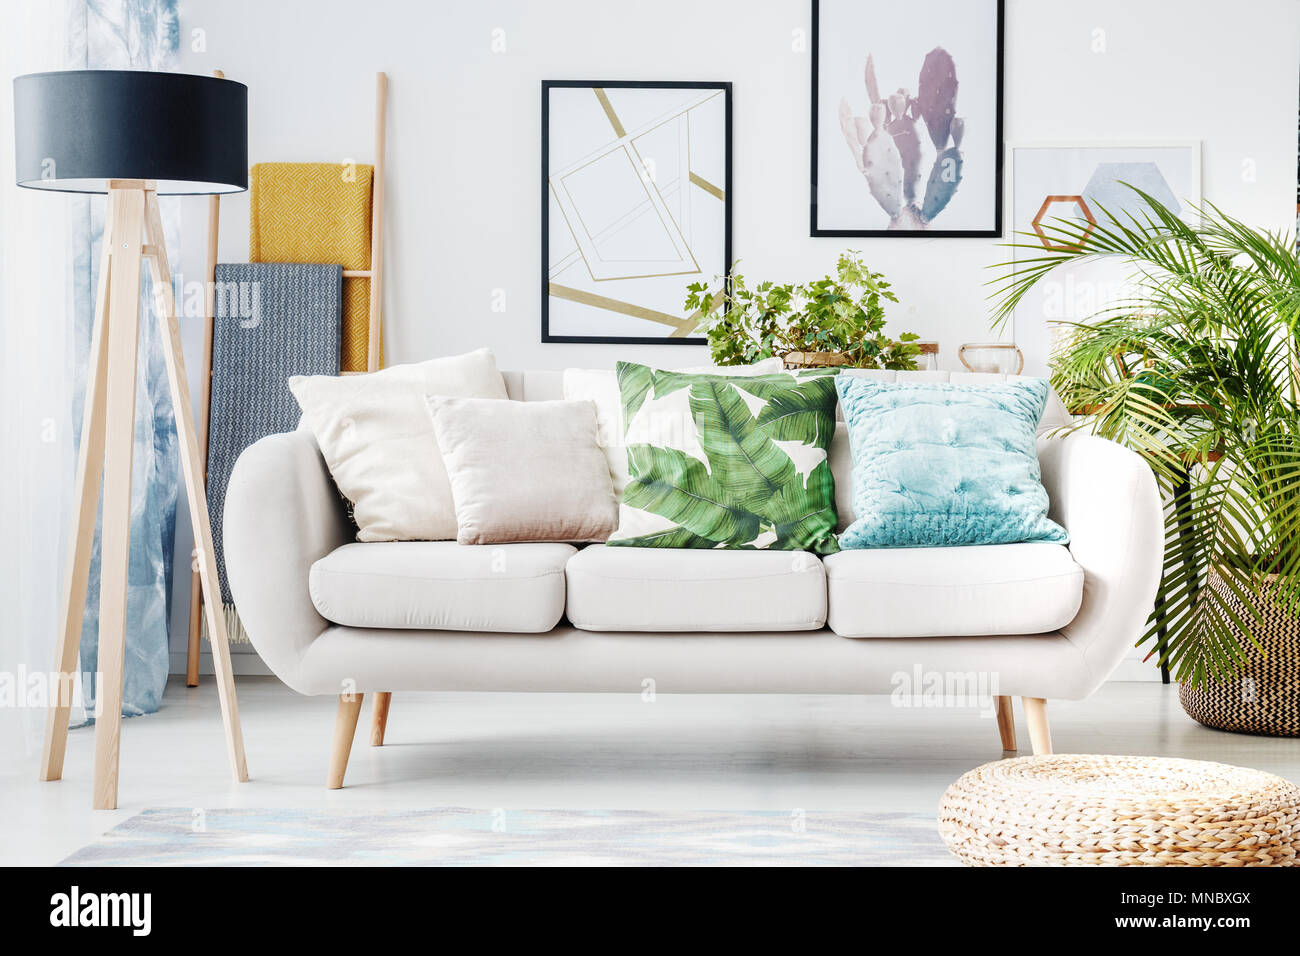 Floral cushion on a beige sofa and posters on the wall in living ...